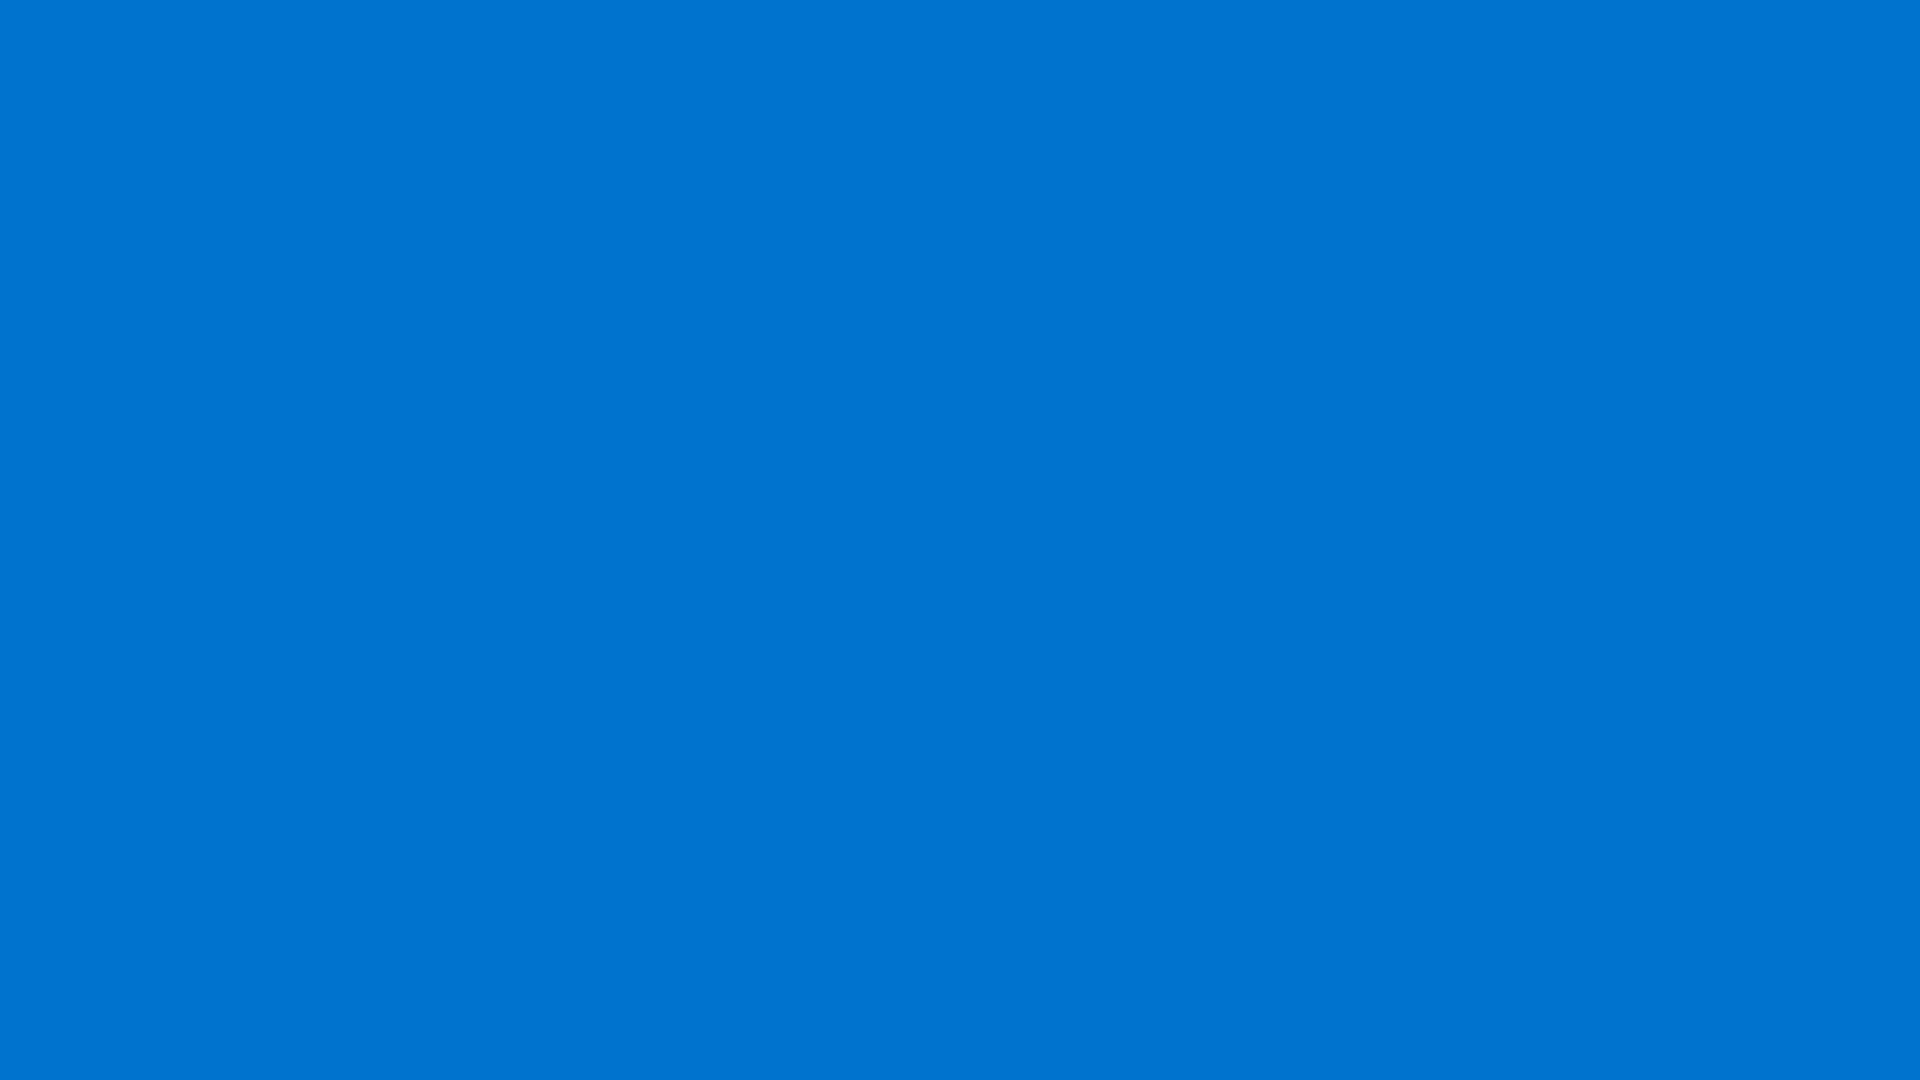 Blue solid color background view and download the below background 1920x1080